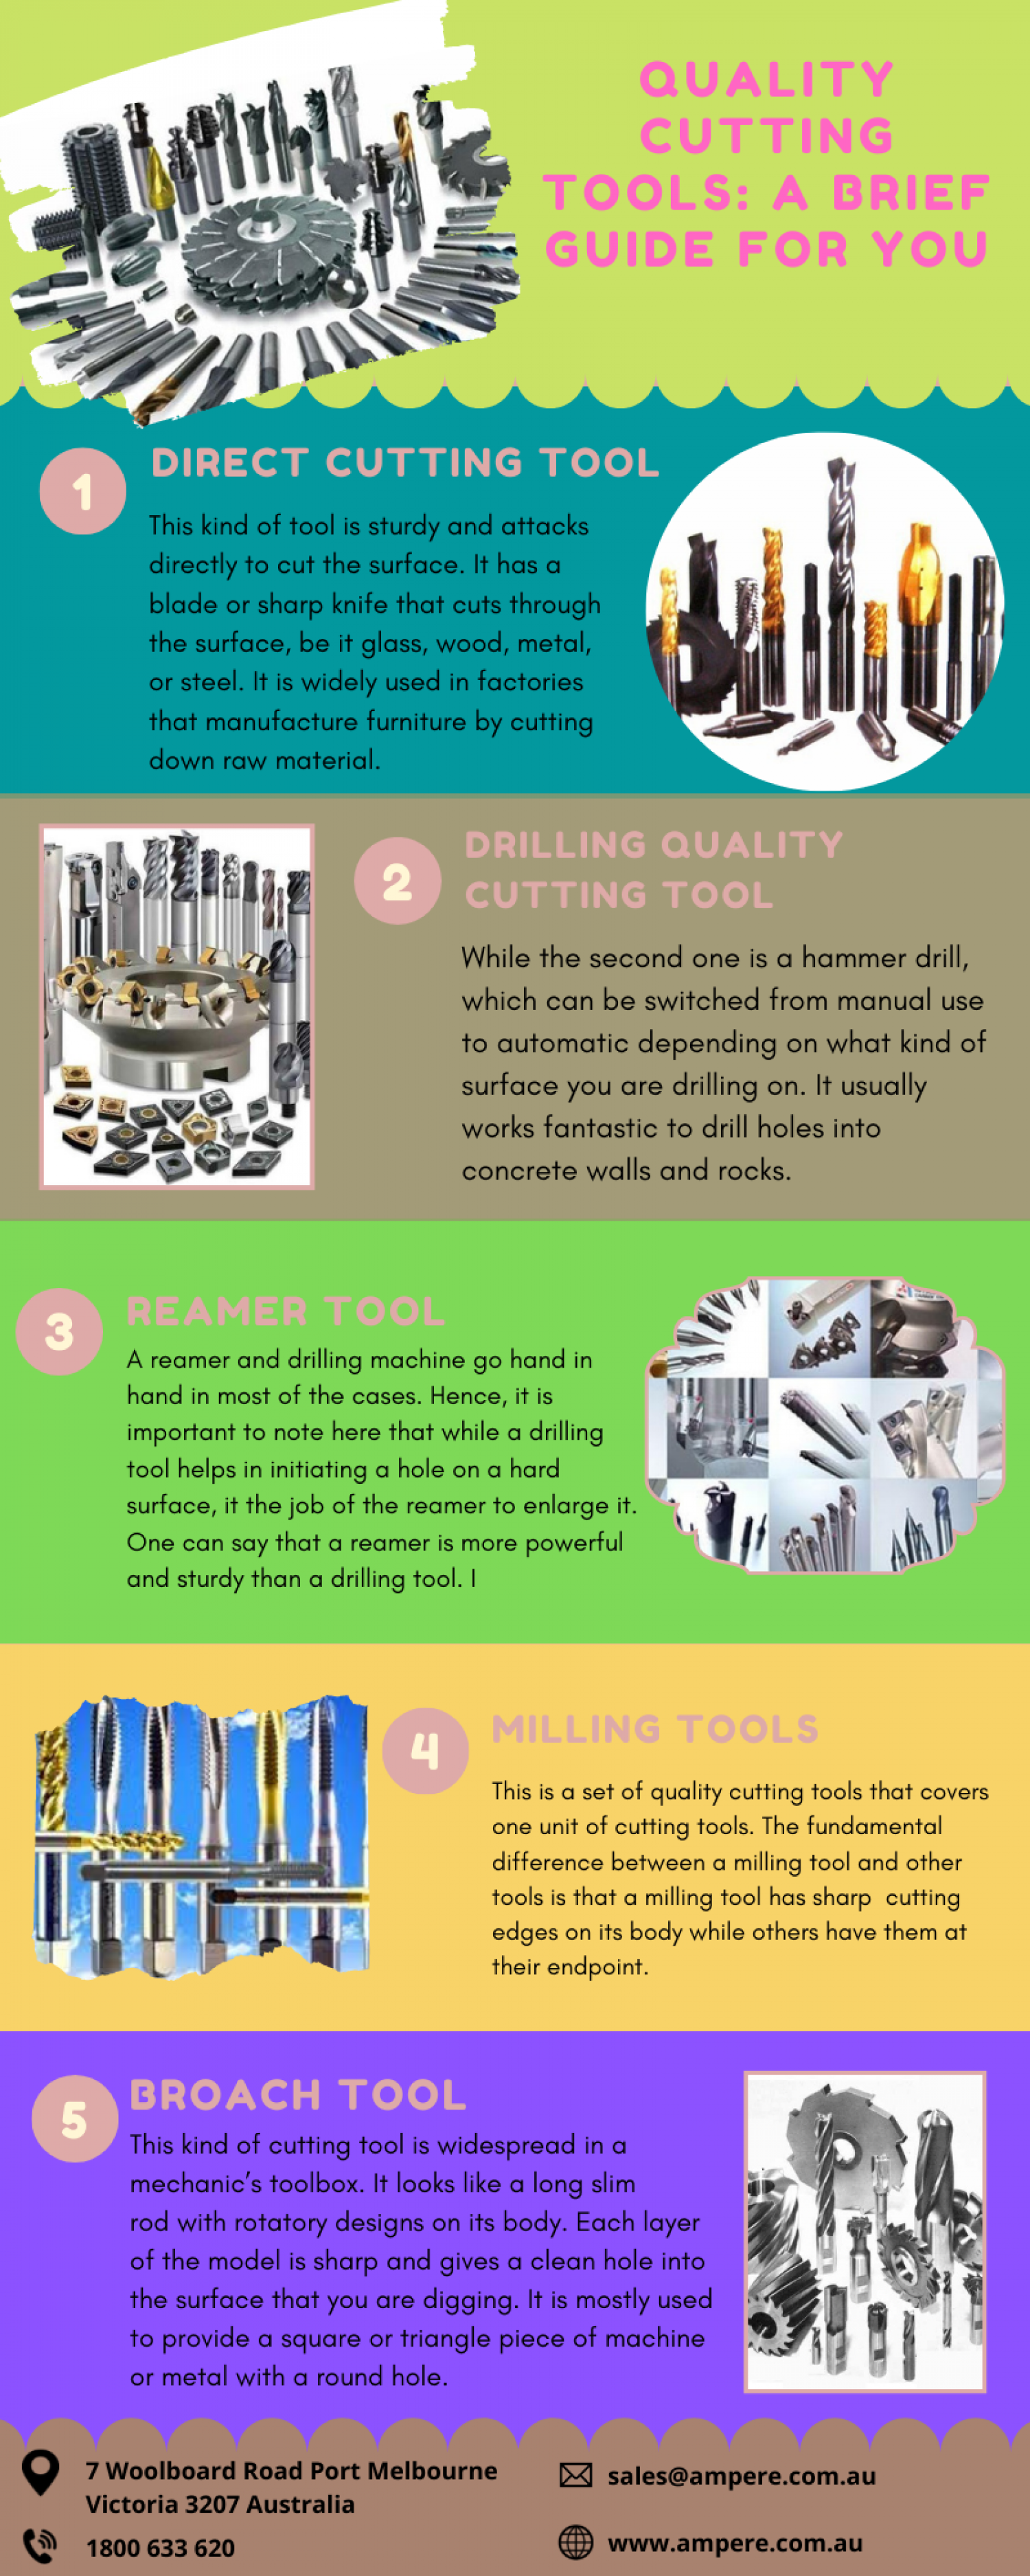 Quality Cutting Tools: A Brief Guide for You Infographic